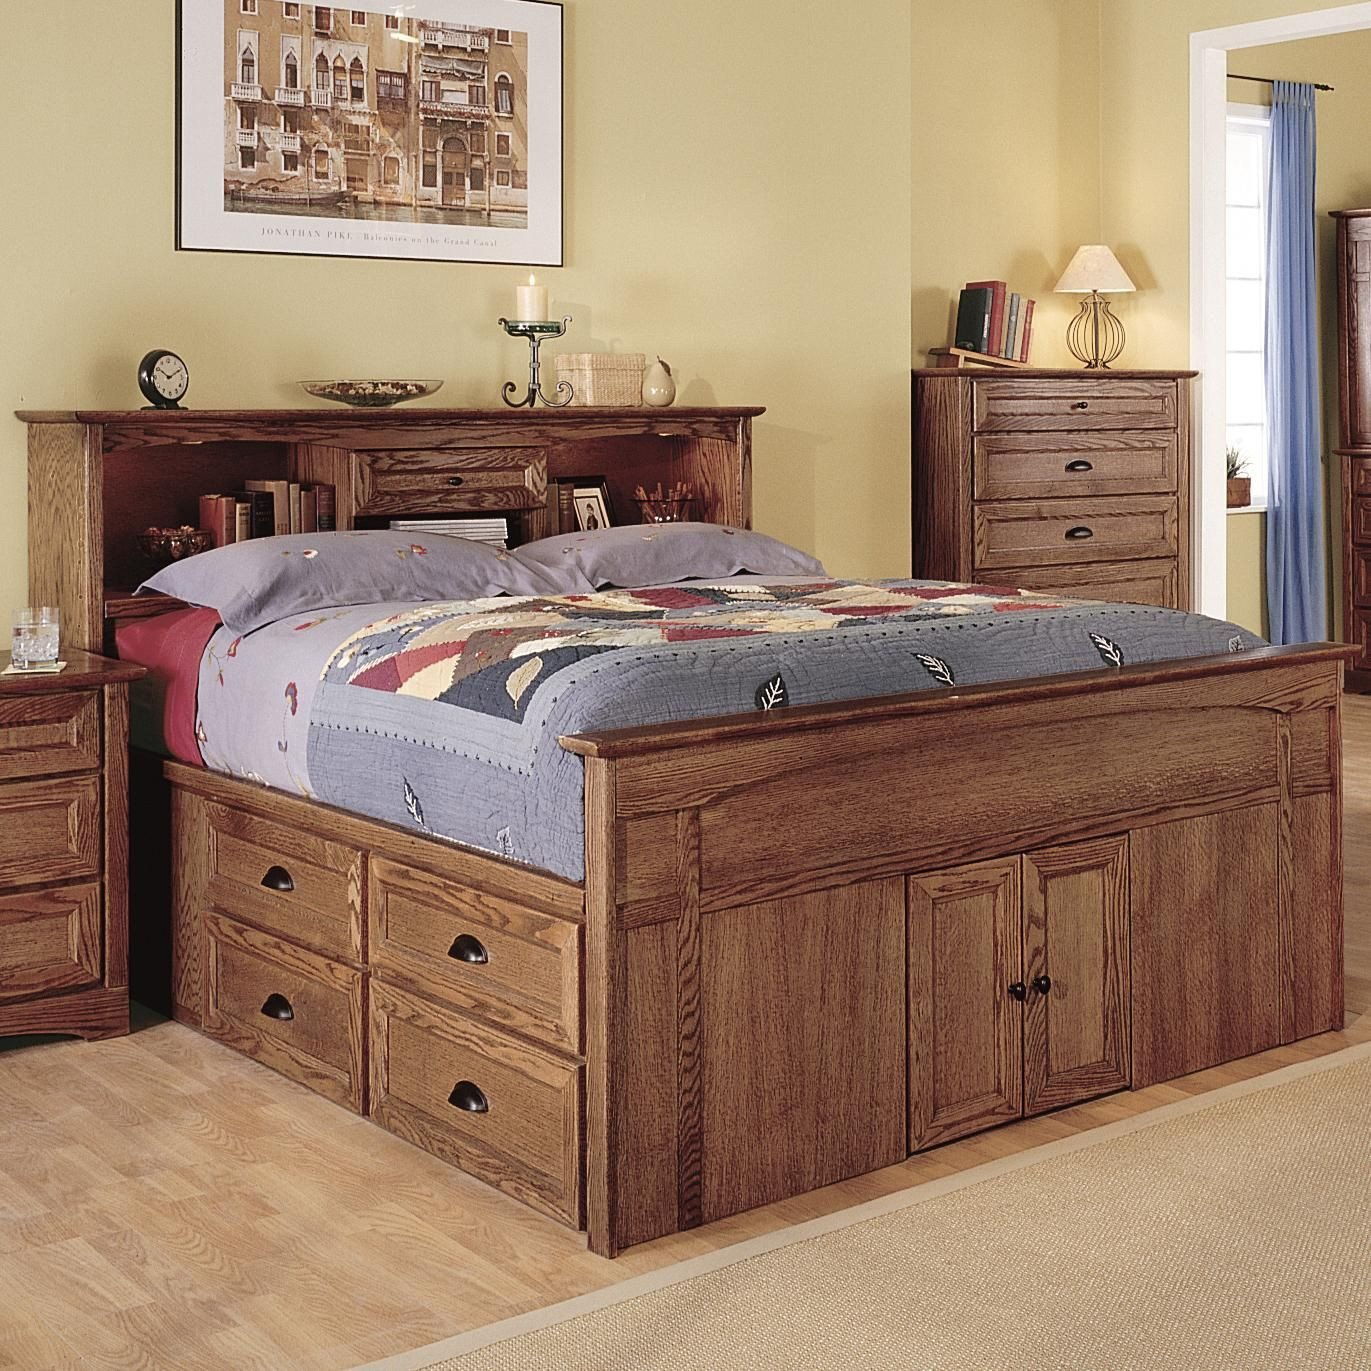 Queen Bedroom Set with Storage Drawers Lovely Syrah Queen Captain S Bed by Thornwood